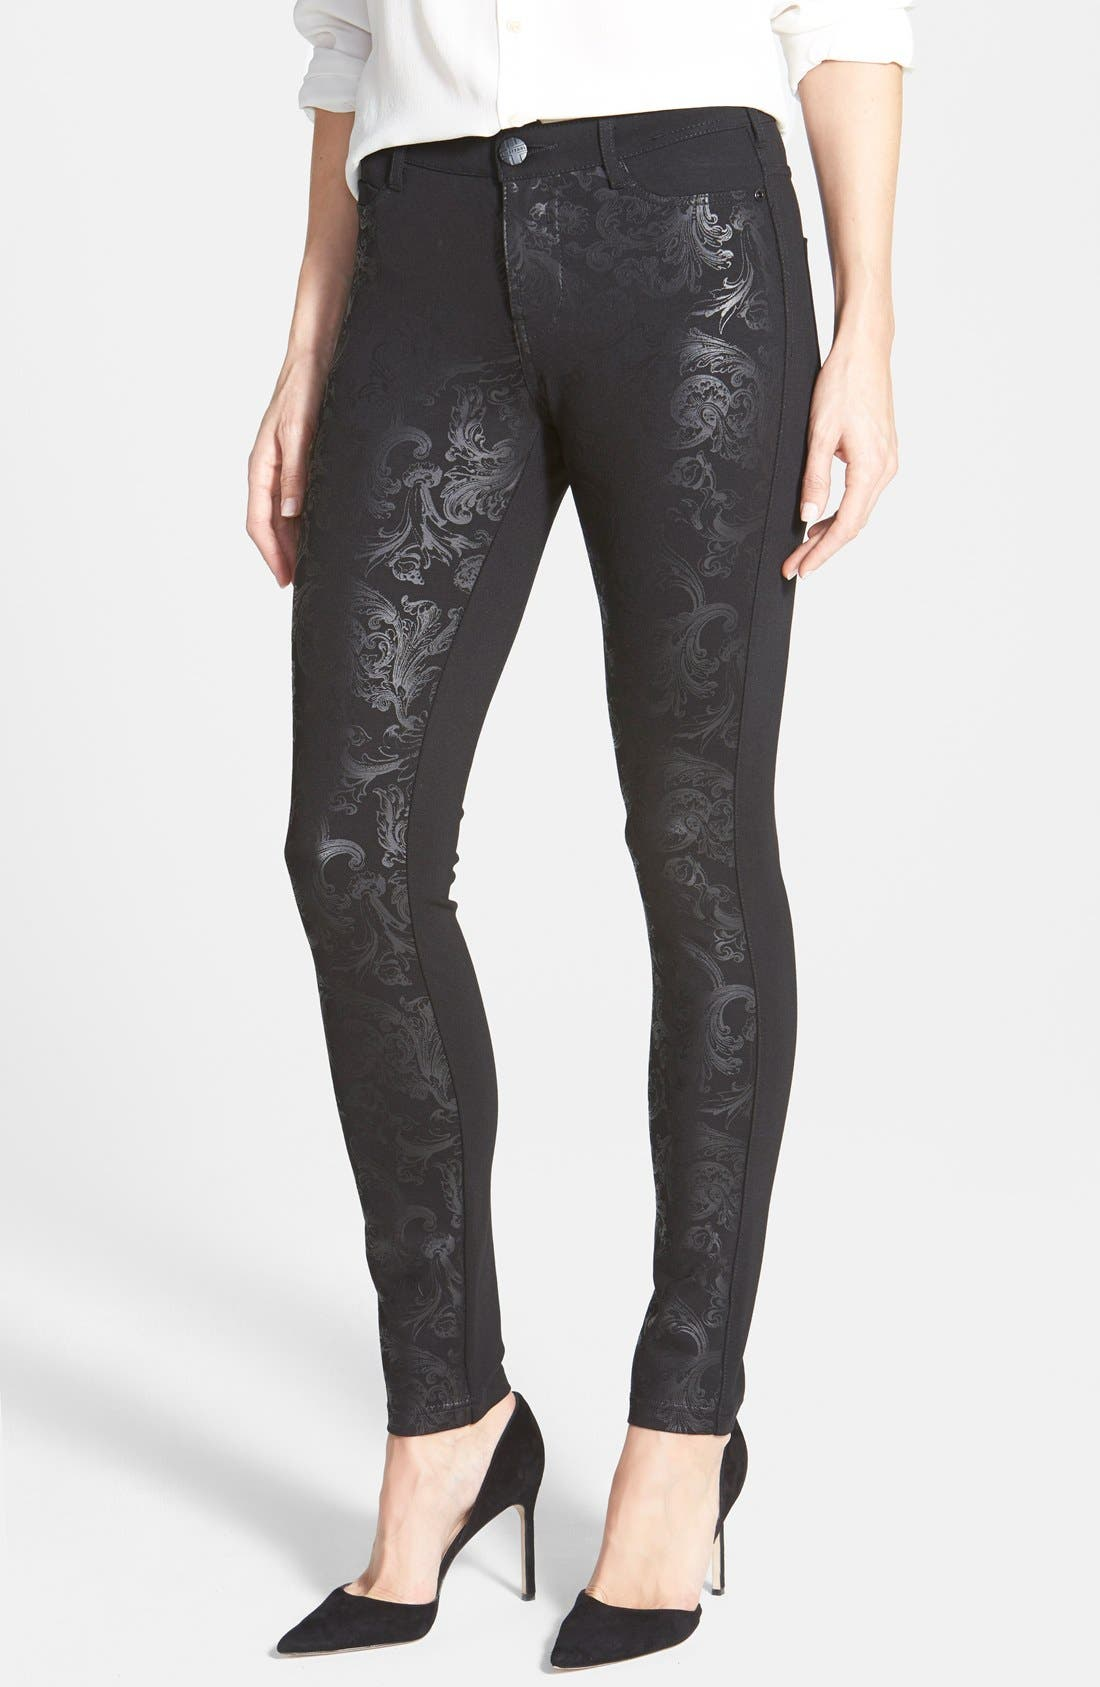 Main Image - Liverpool Jeans Company 'Madonna' Gloss Print Stretch Knit Skinny Pants